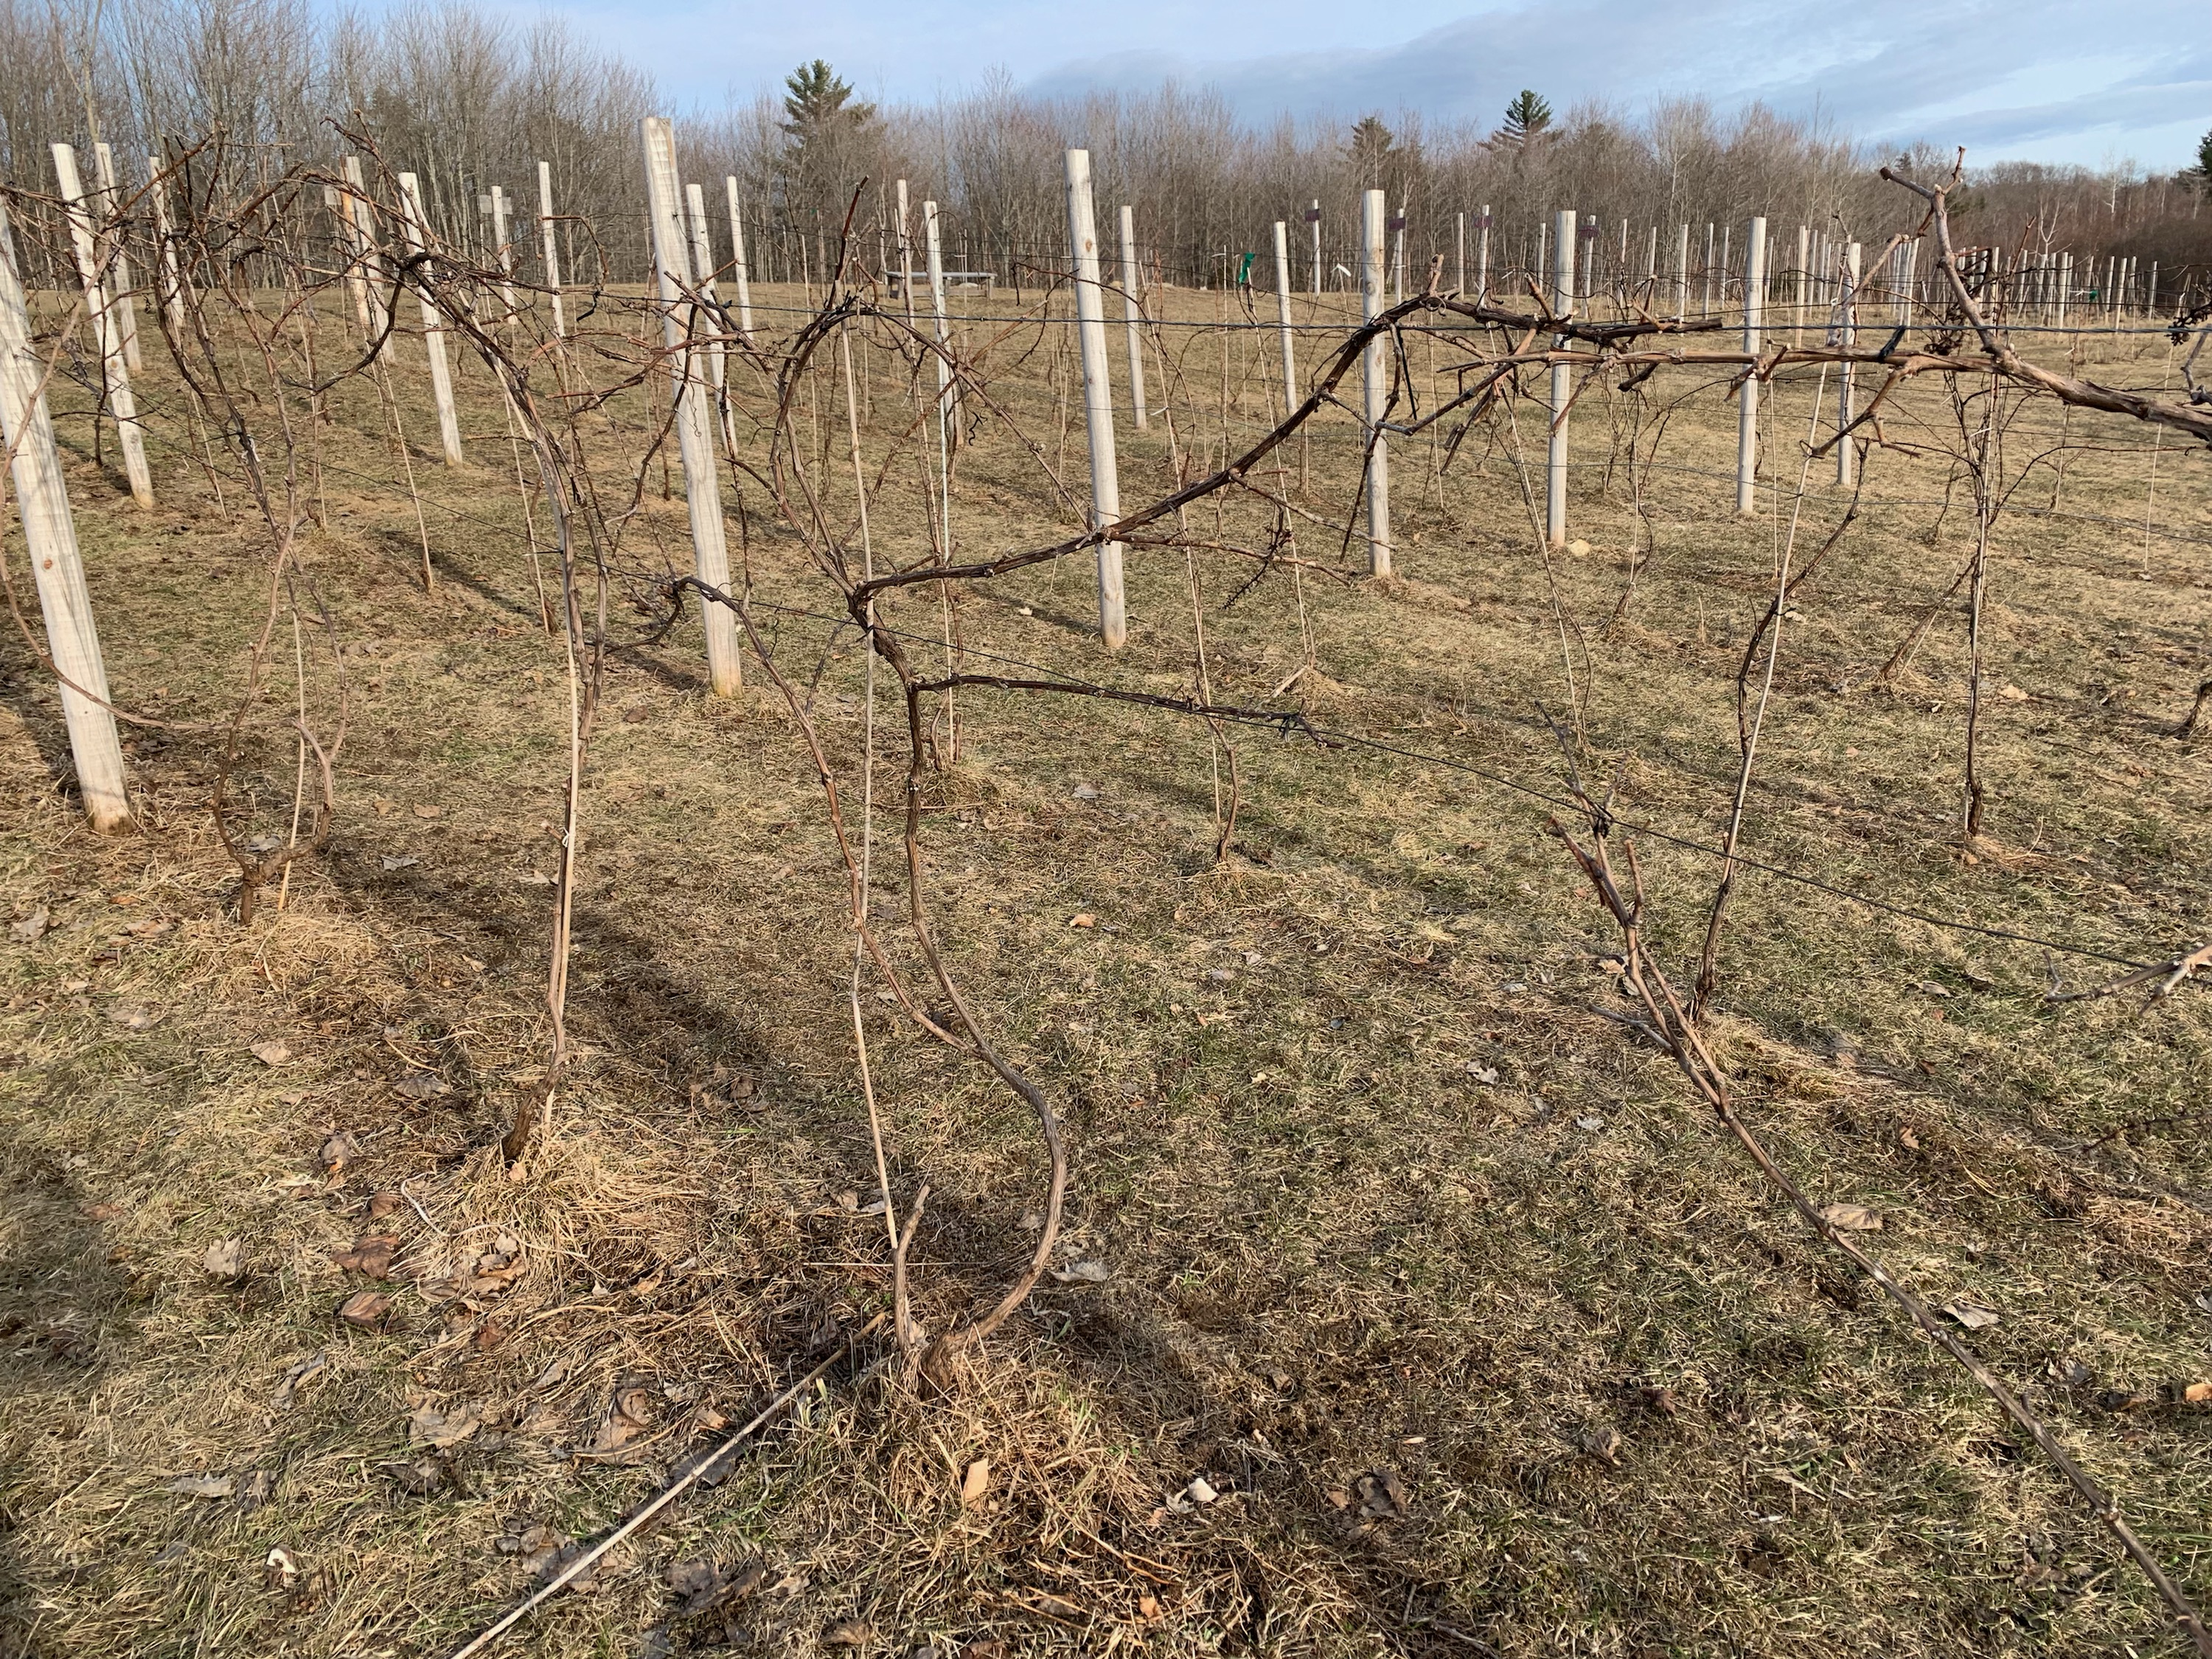 Pruning the Vines, Part I